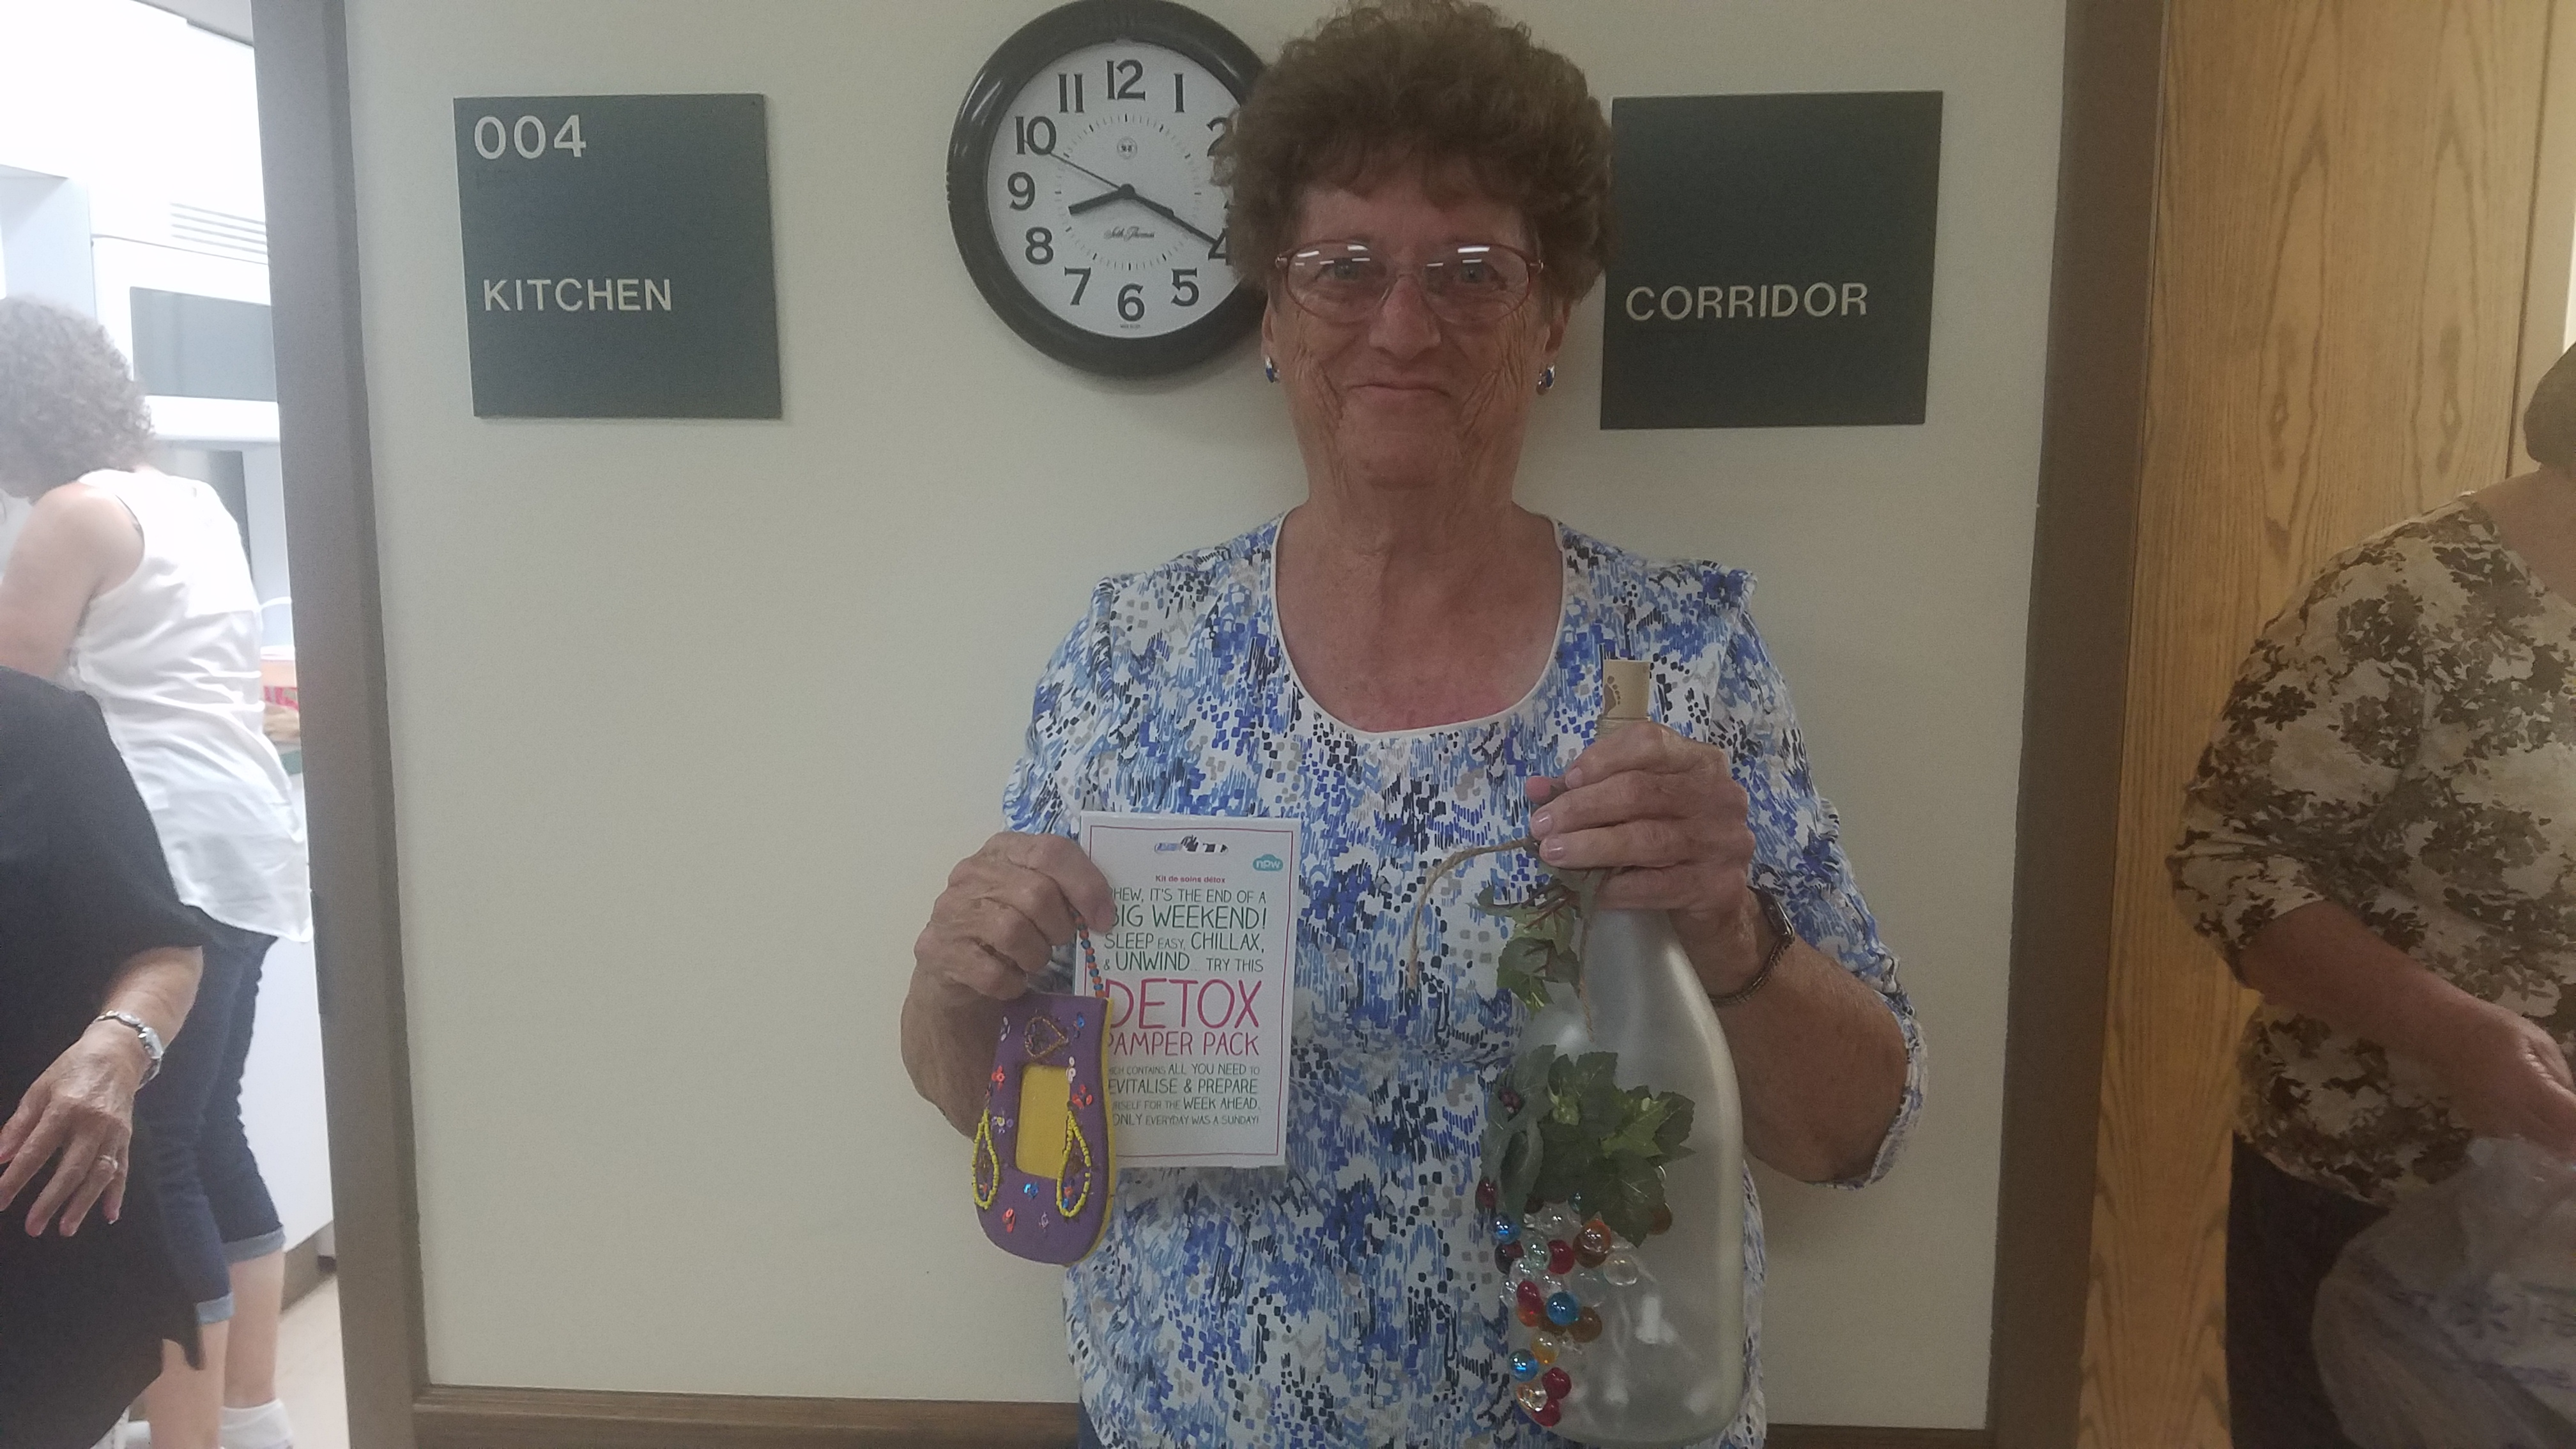 Congratulations to Patsy Smith for winning the August door prize at the Ladies Night Out event!